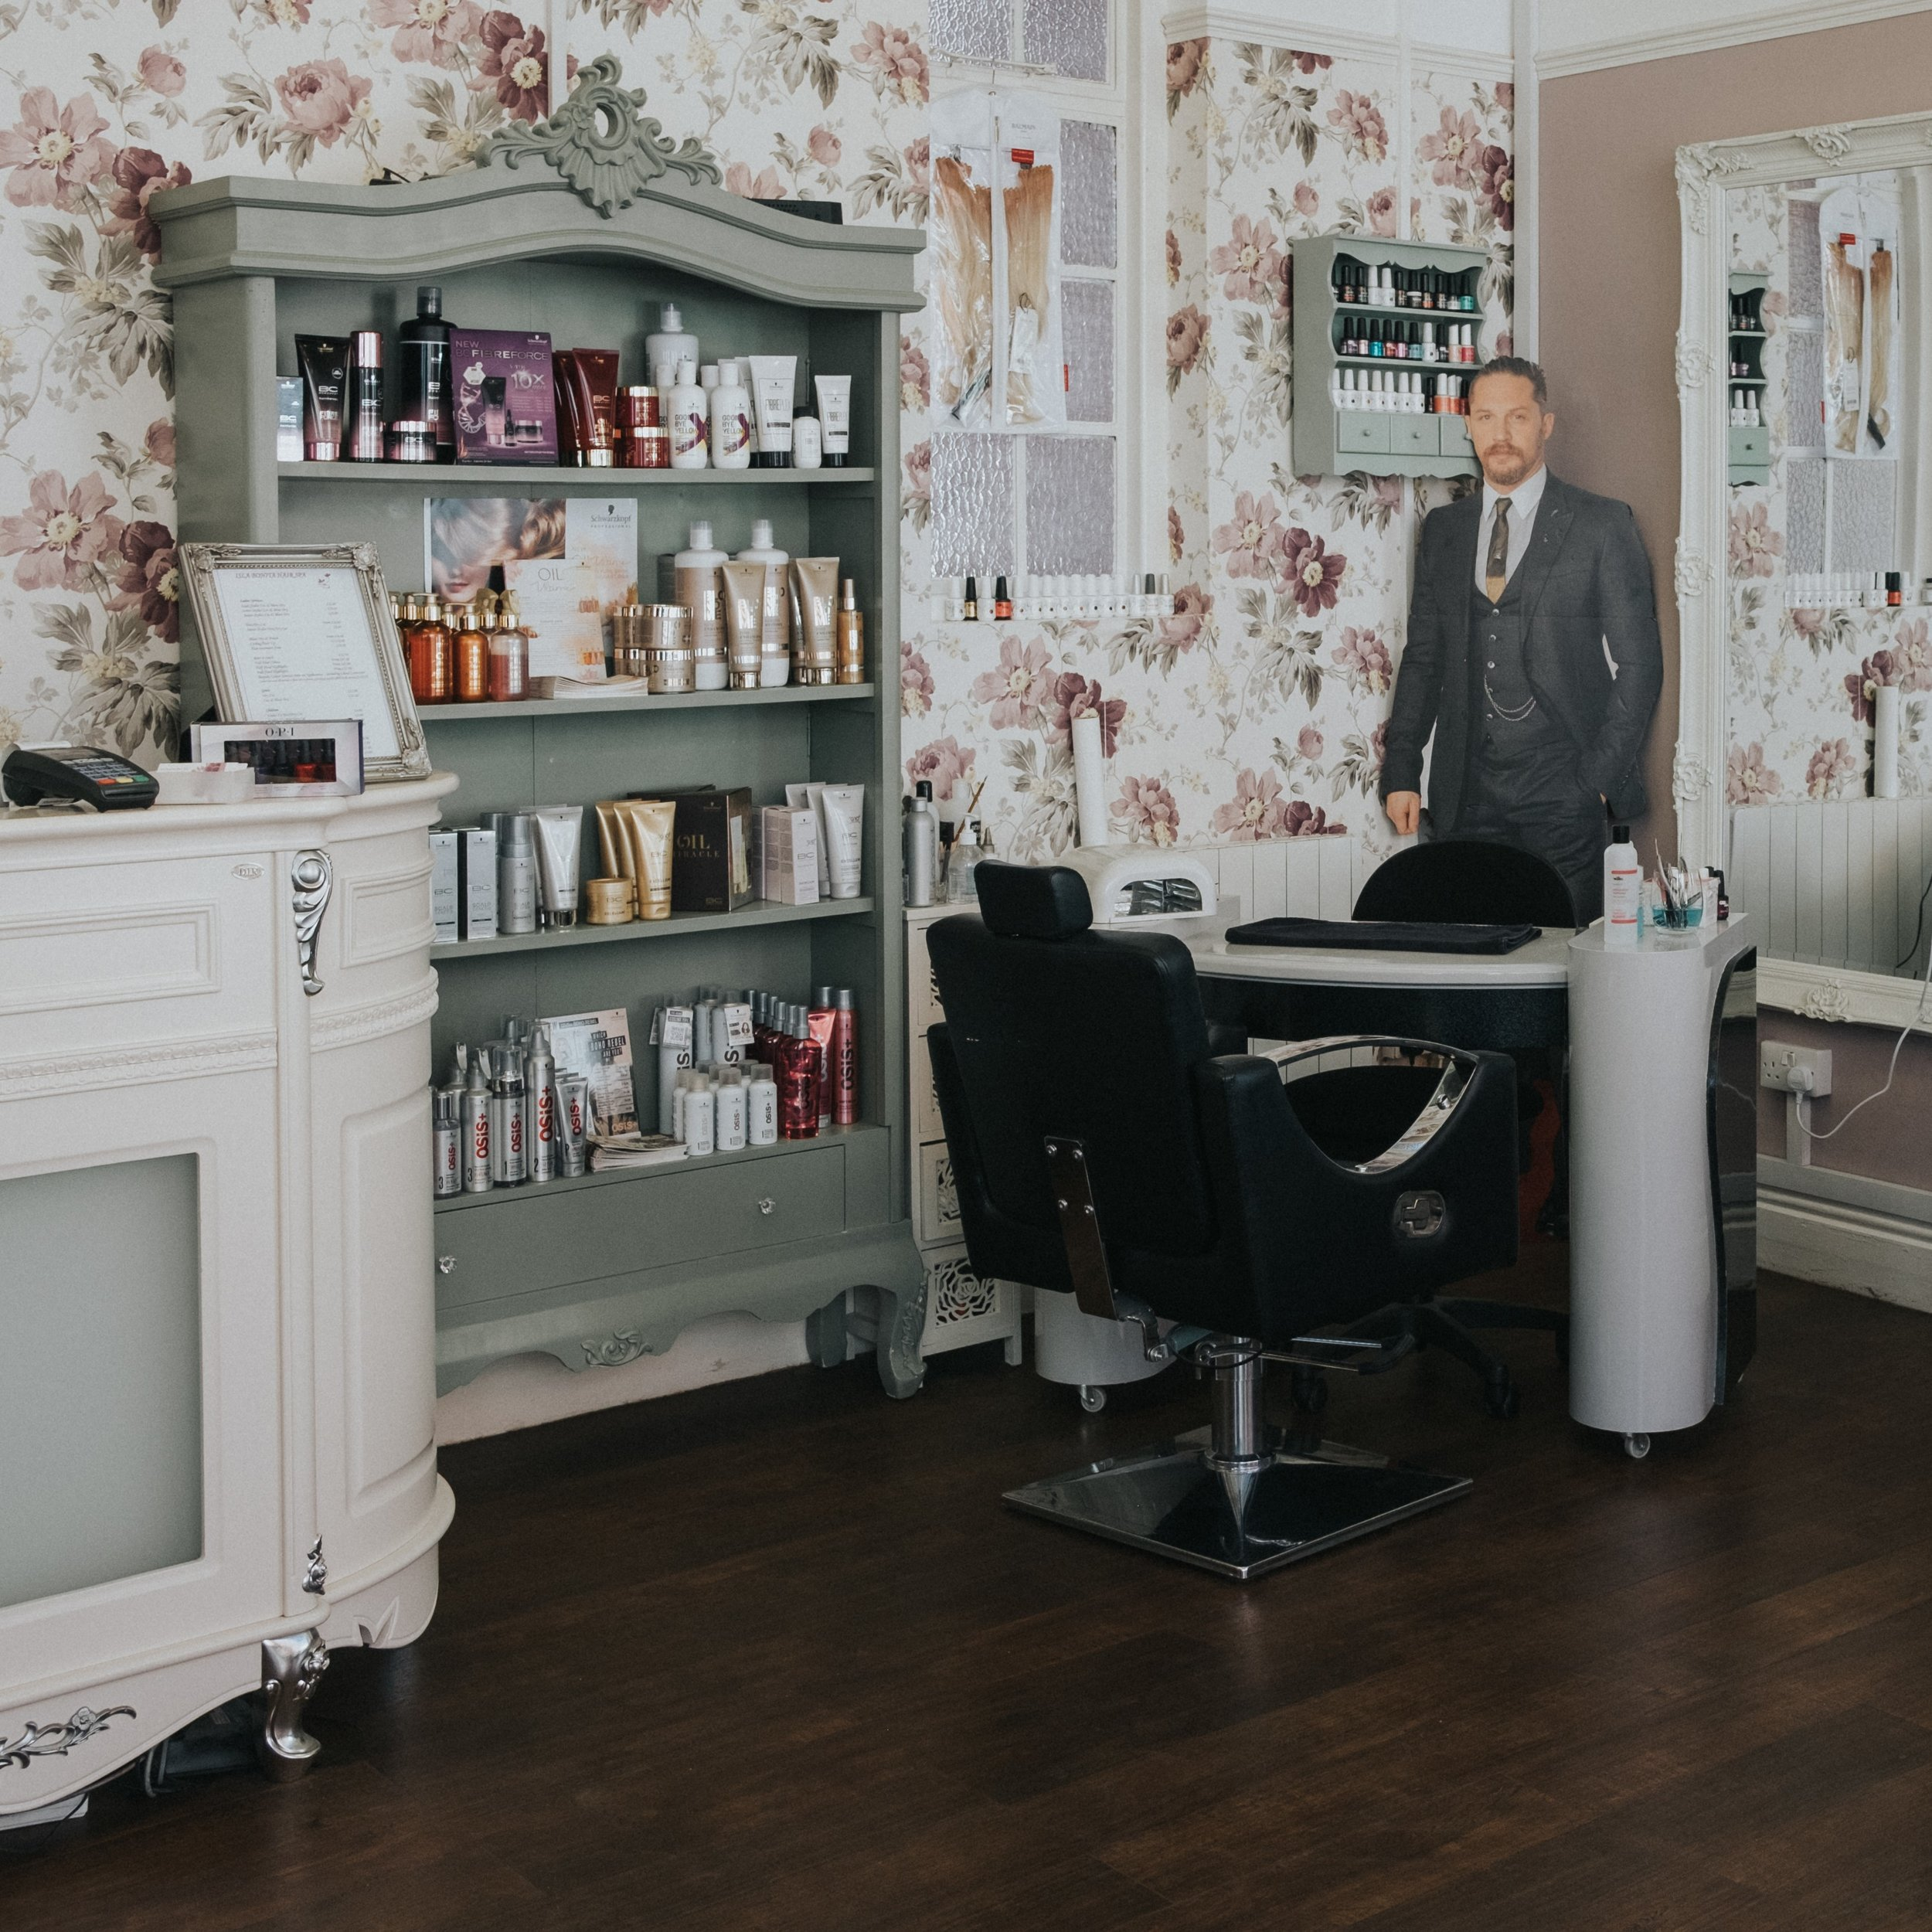 Premises - Ideal if you want to show off your workplace - salons, shops, offices, garages, restaurants... the list goes on and on. Yes that is a life size cut out of Tom Hardy at Isla Bonita Hair Spa, Gainsborough.